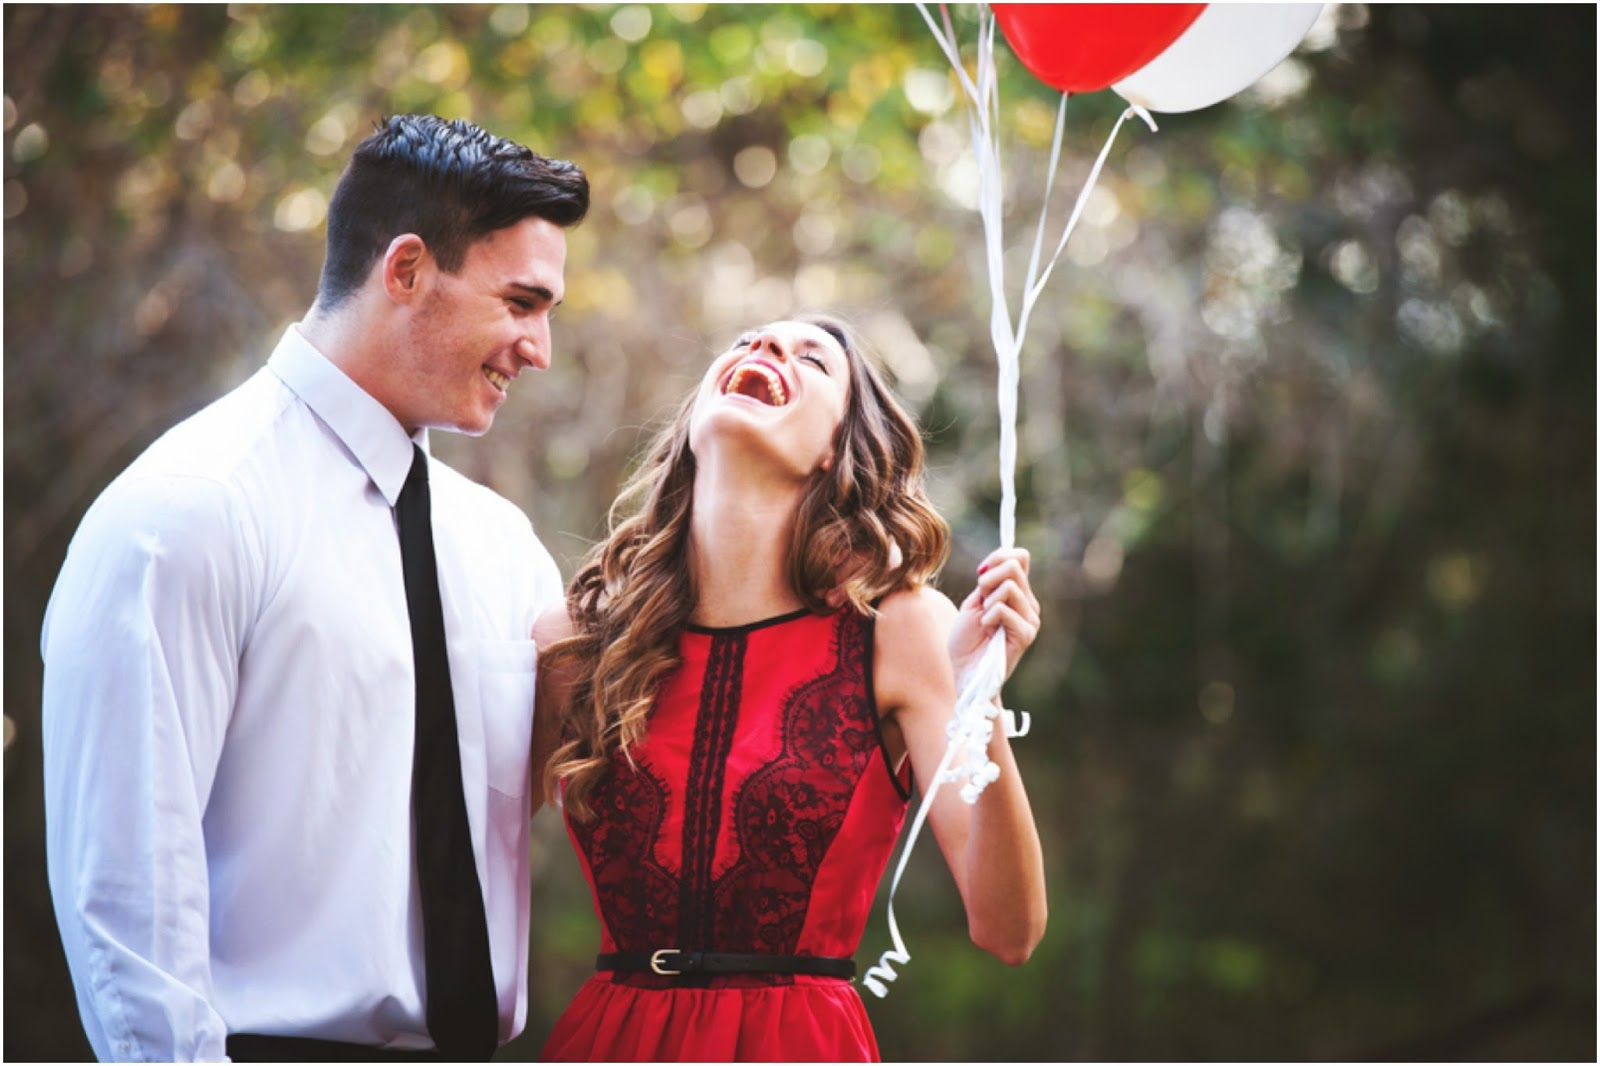 The Town Bird: Different Types of Couples on Valentine